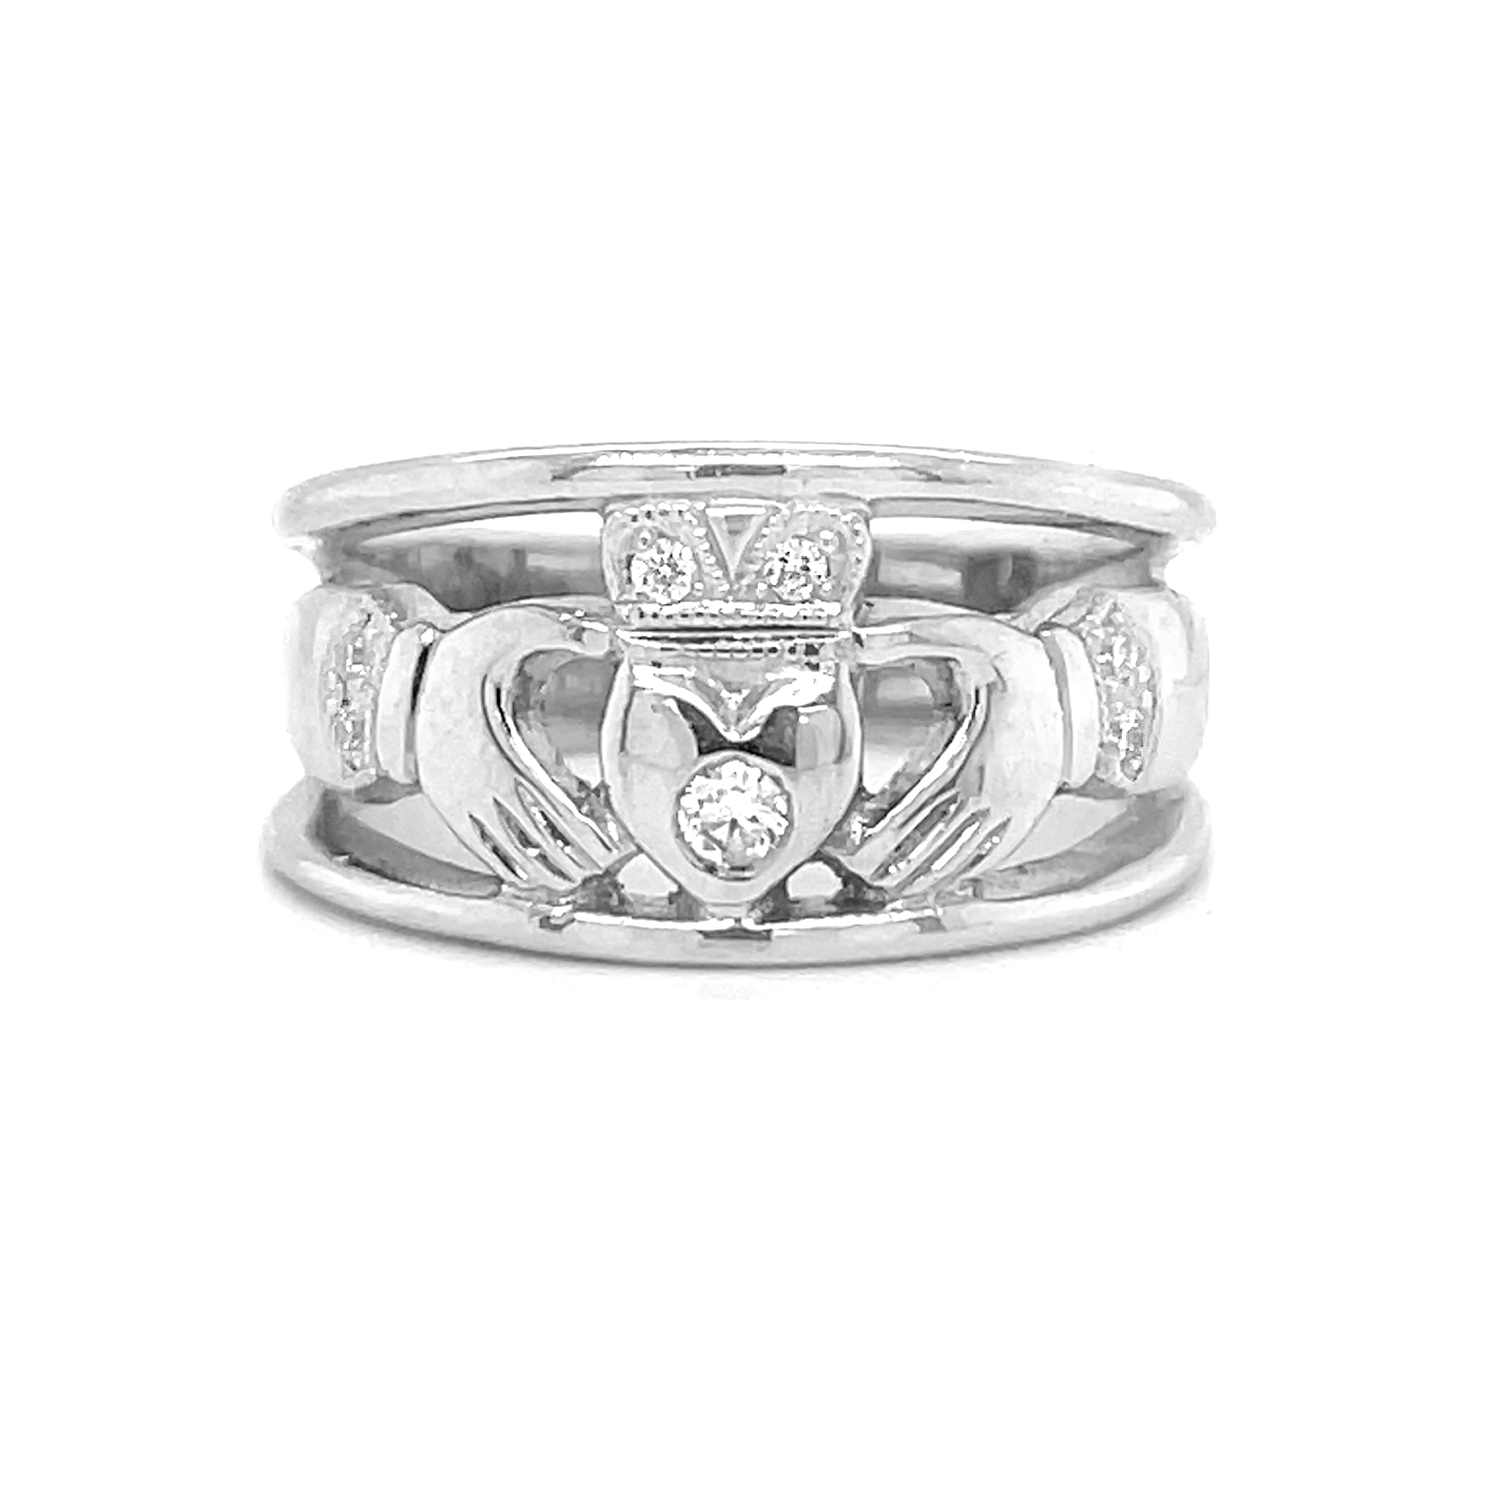 White Gold Claddagh Ring With Brilliant Cut Diamond